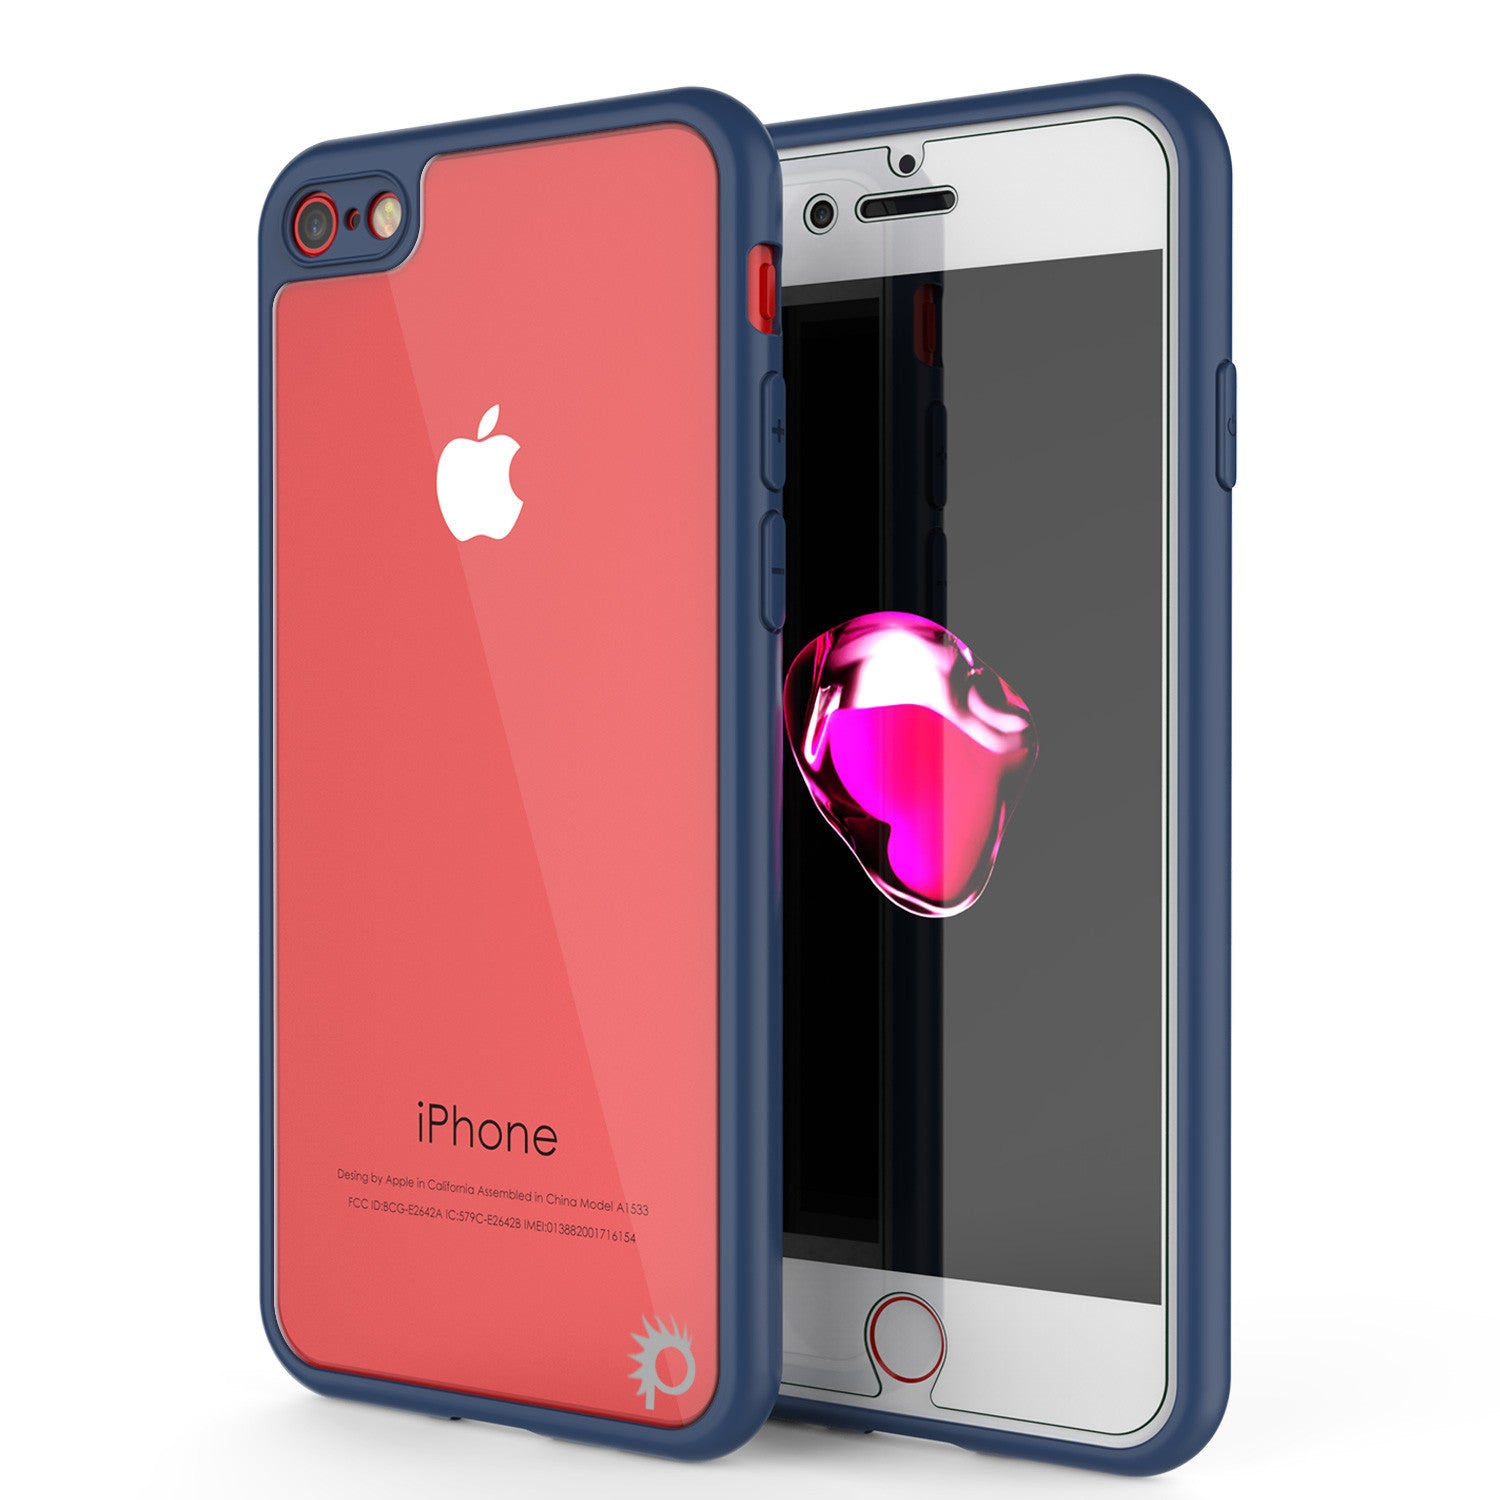 iPhone 7 Case, Punkcase [MASK Series] [NAVY] Full Body Hybrid Dual Layer TPU Cover protective Tempered Glass Screen Protector